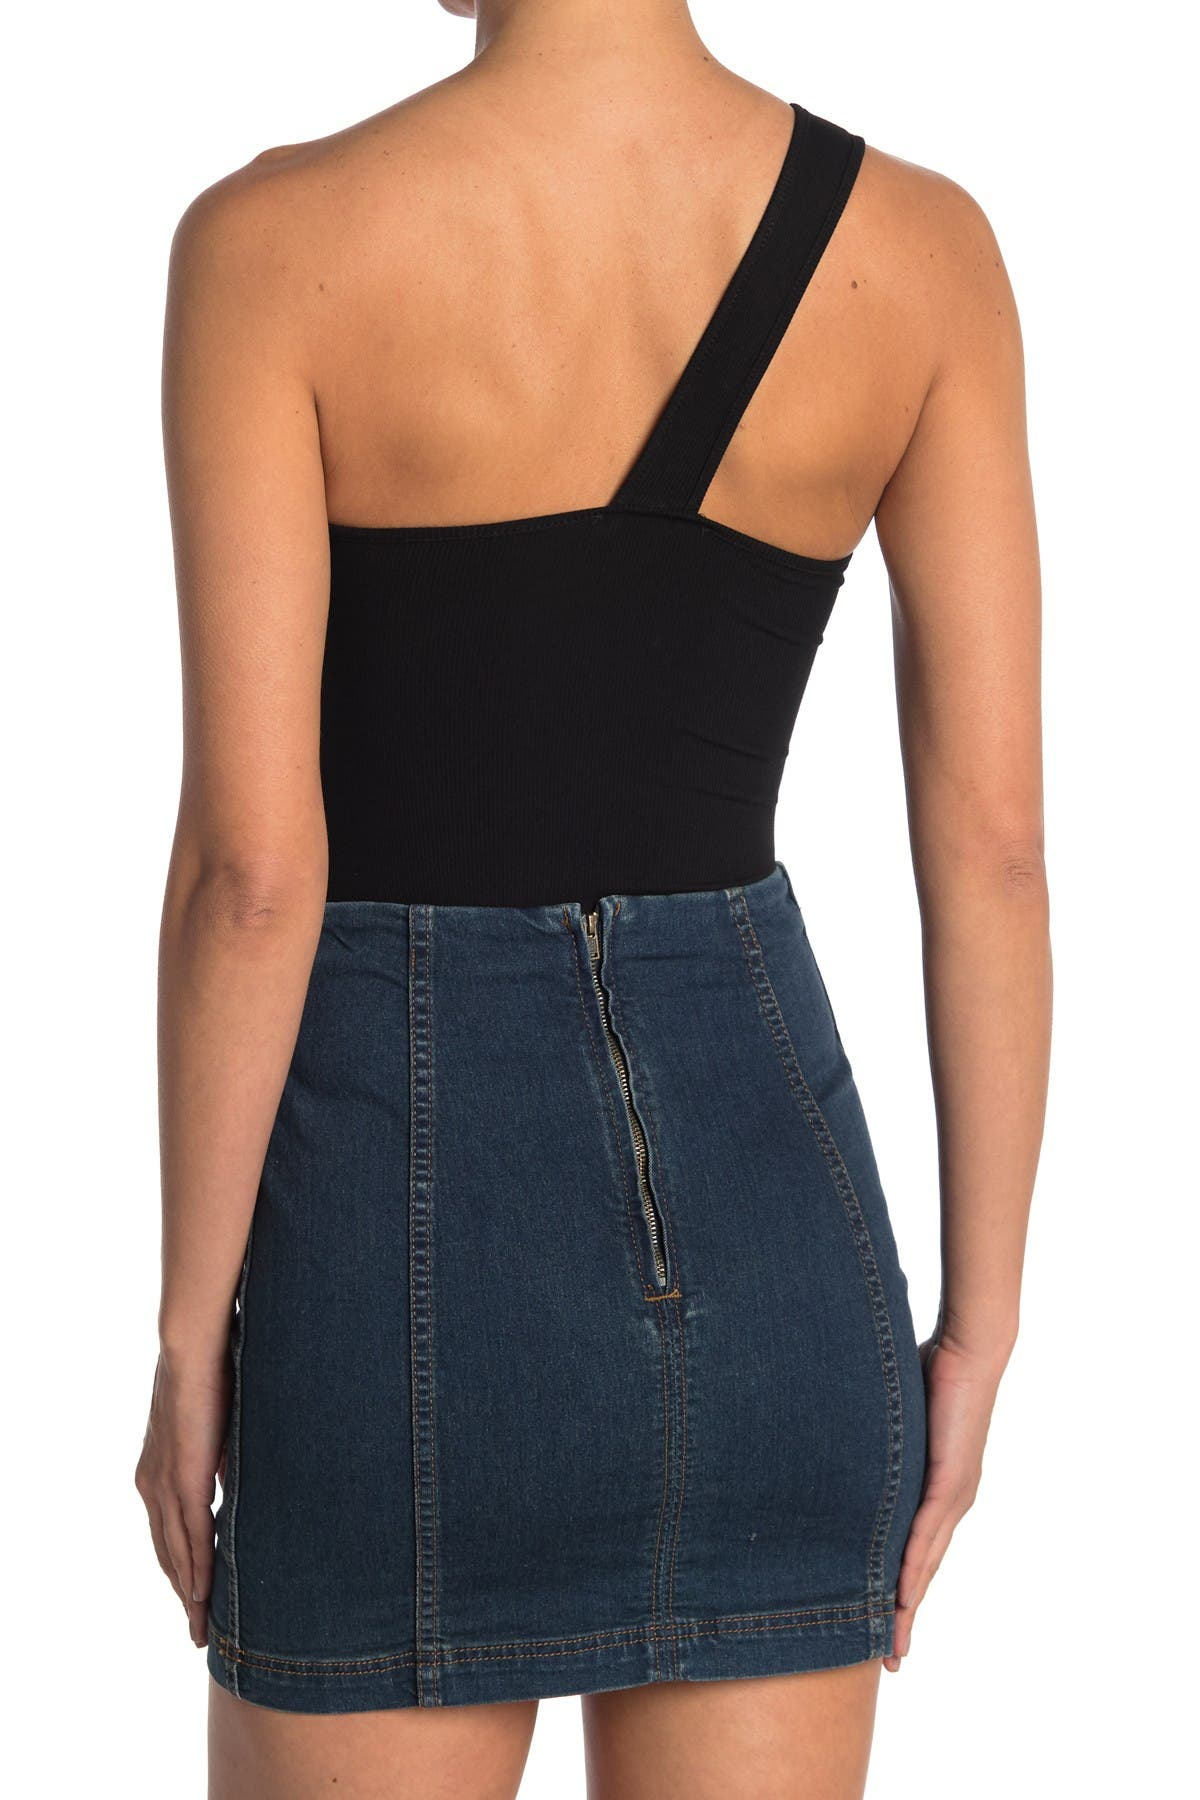 Image of Elodie One-Shoulder Cutout Bodysuit